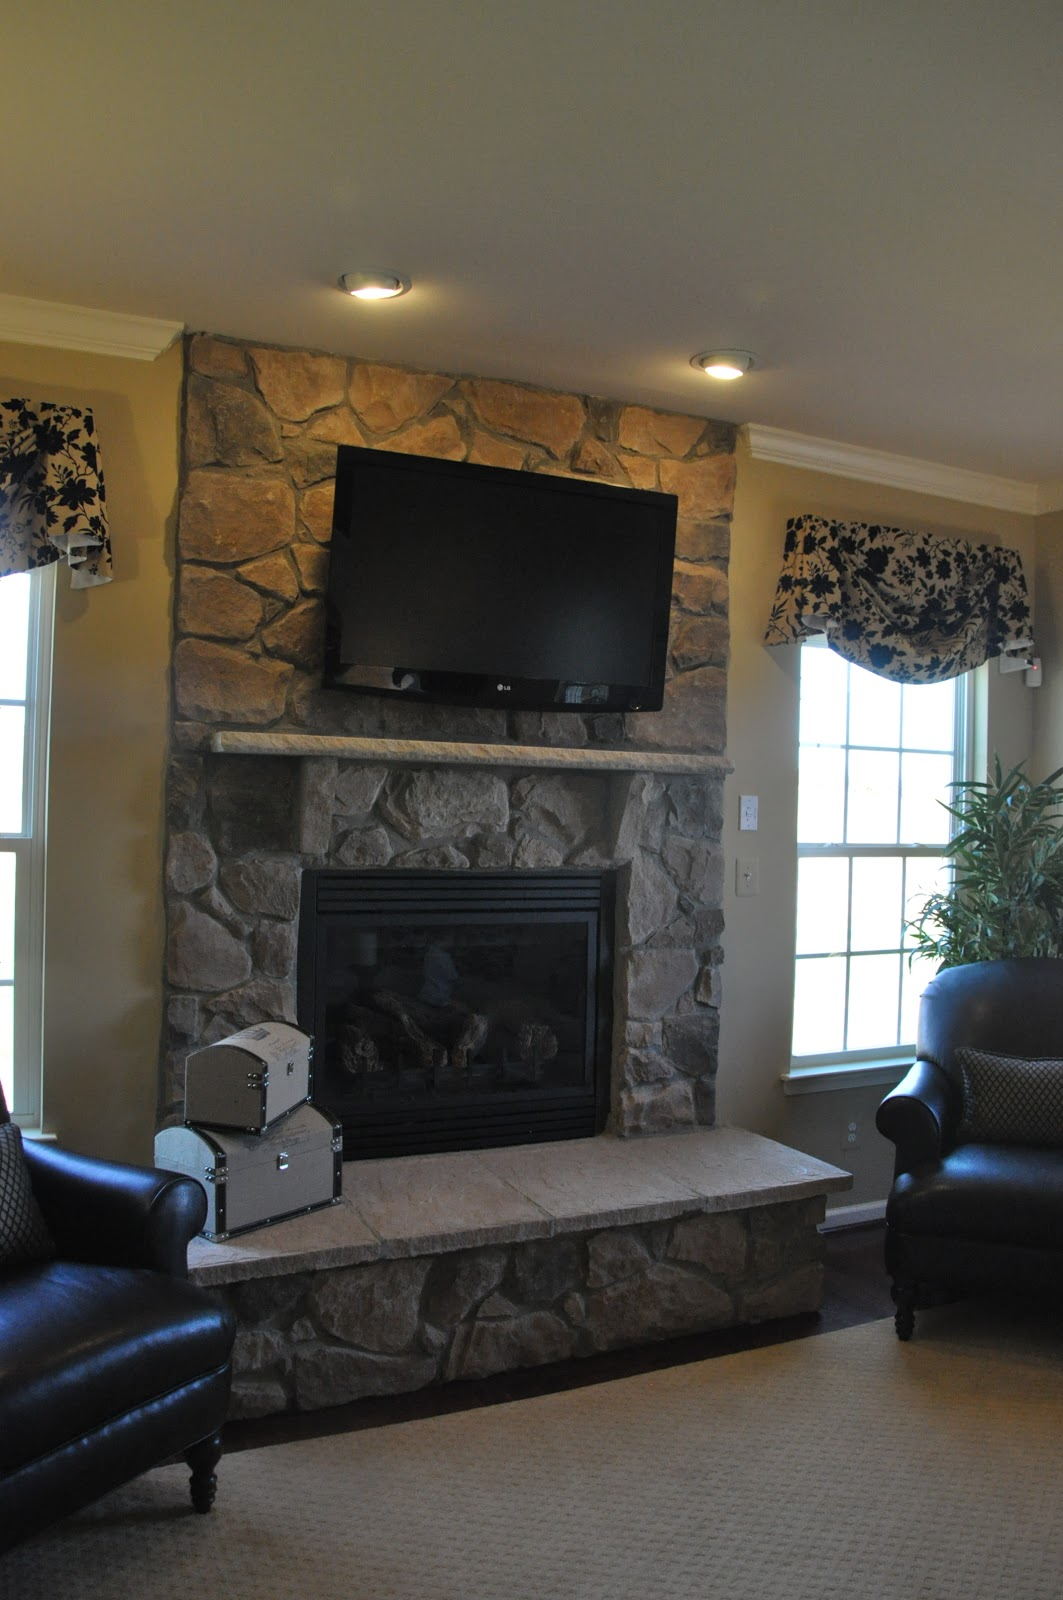 building a ryan homes ravenna tv over the fireplace or not